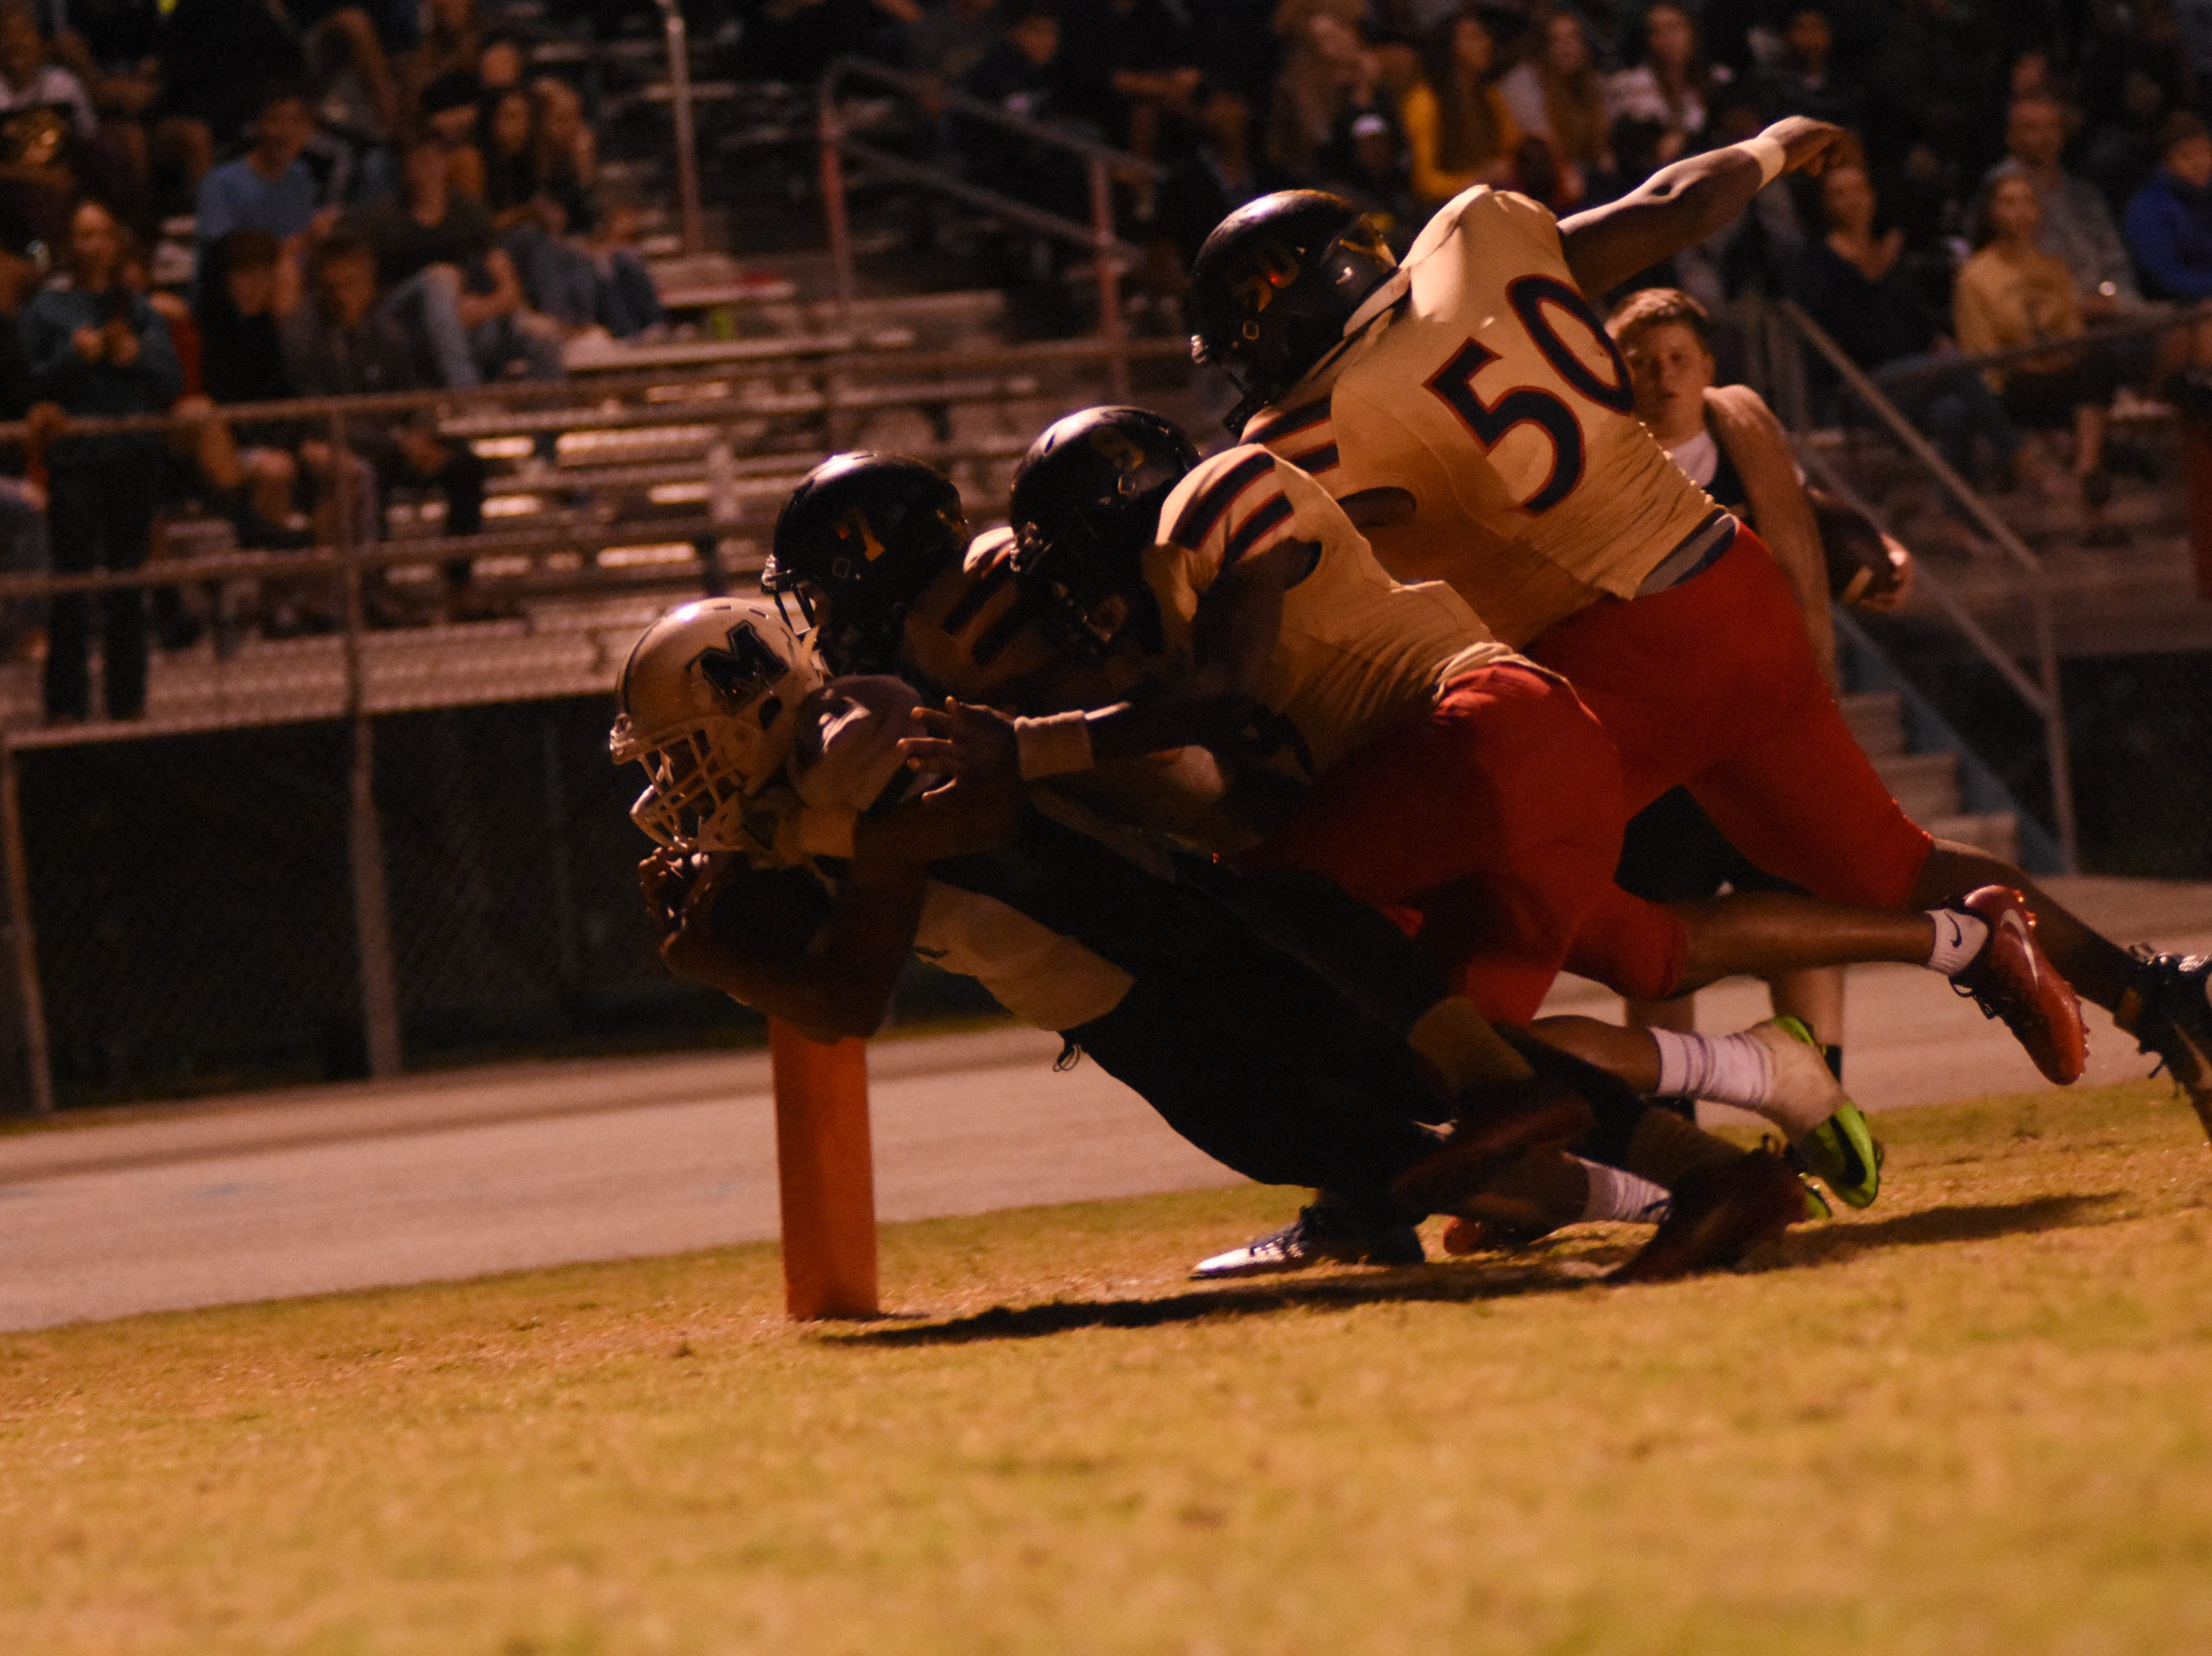 Antonio Wright Jr. (7) is brought down by three Commodores just inside the end zone.